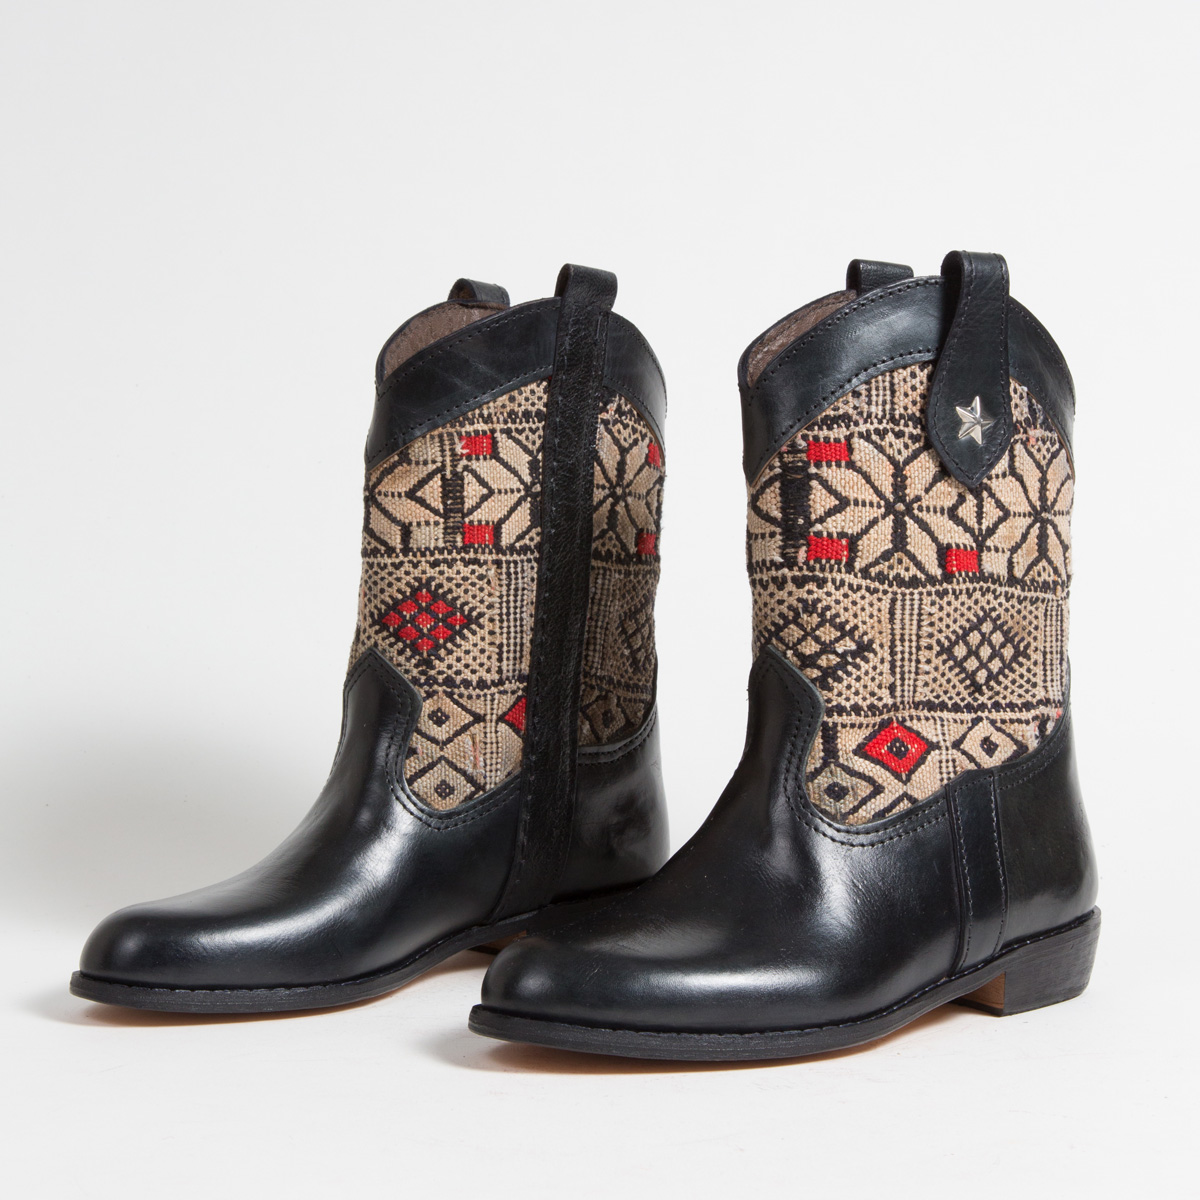 Bottines Kilim cuir mababouche artisanales (Réf. MN5-38)